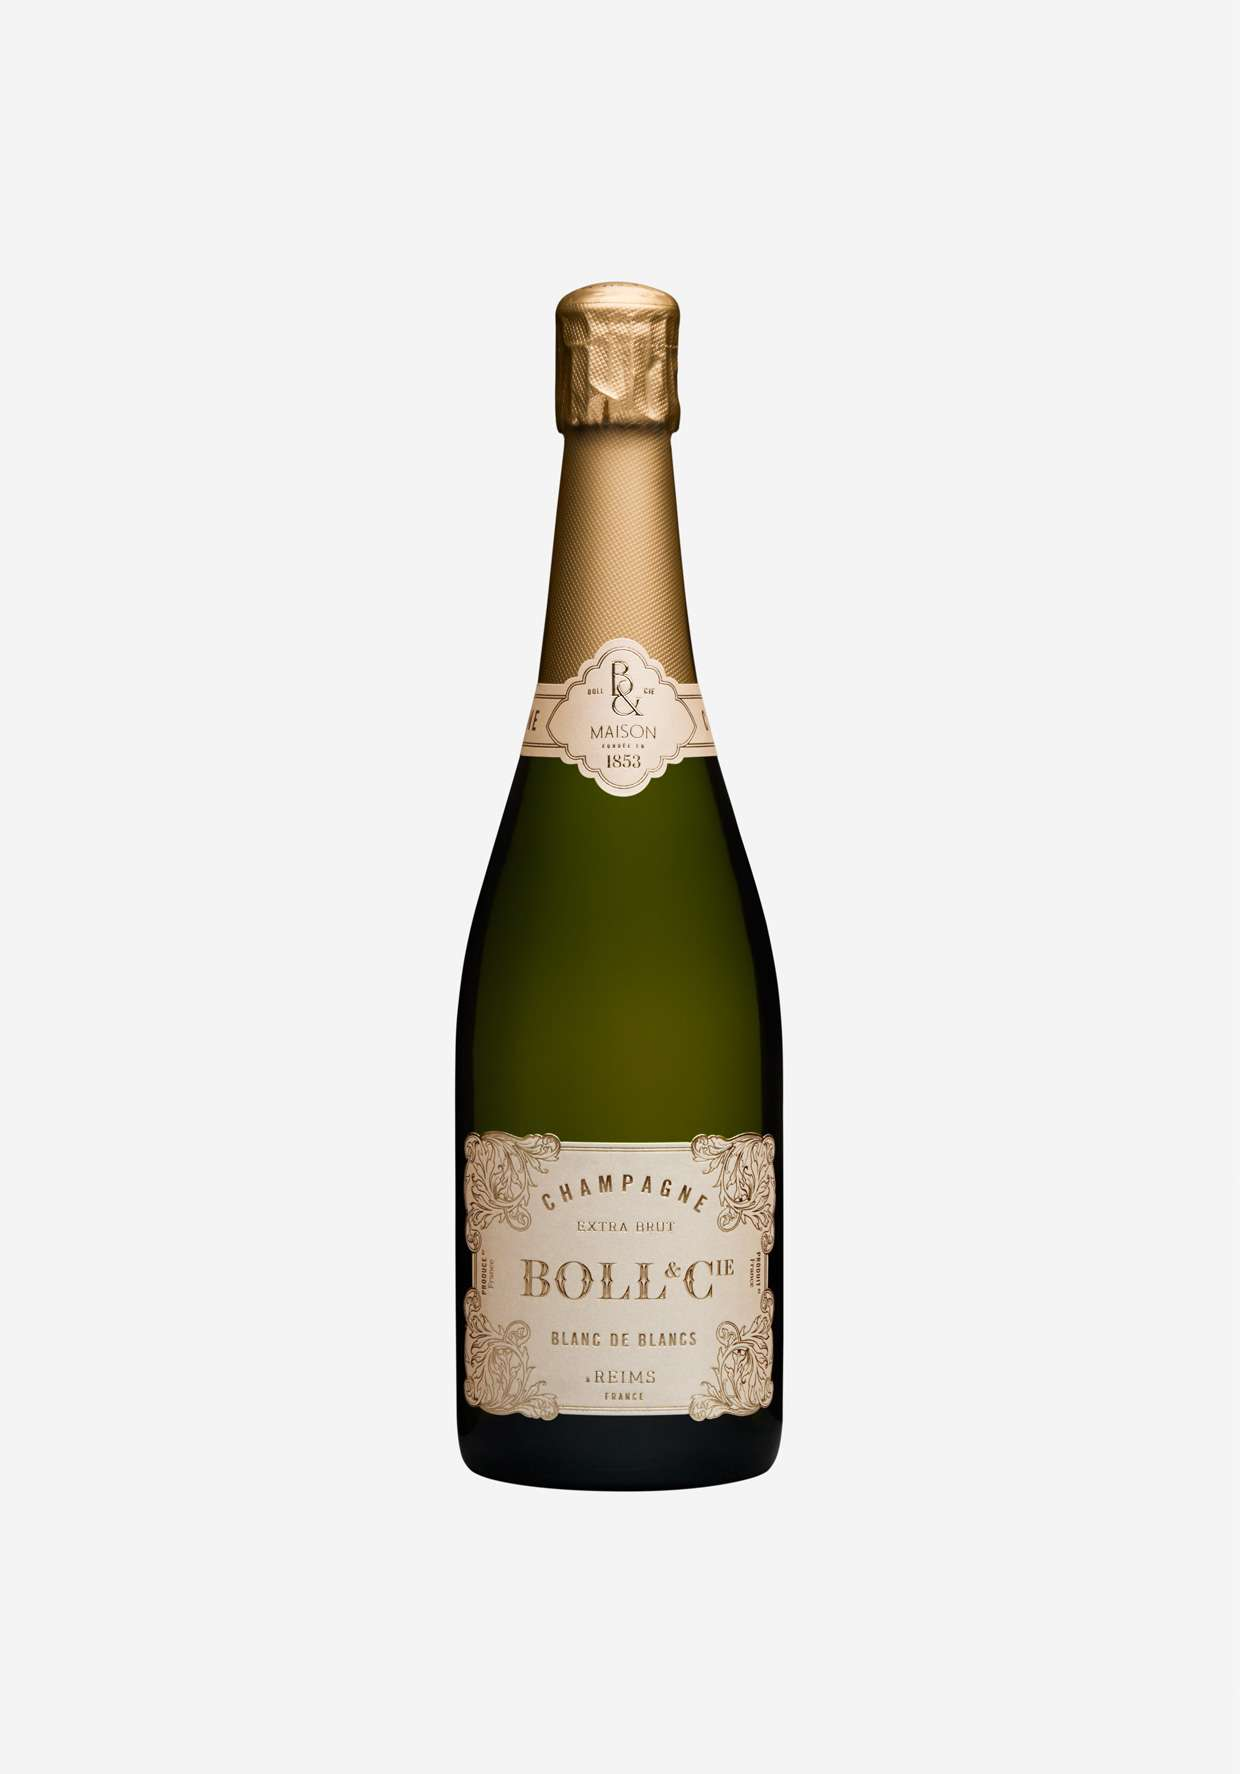 A close-up of a bottle of Extra Brut Champagne from Boll and Cie